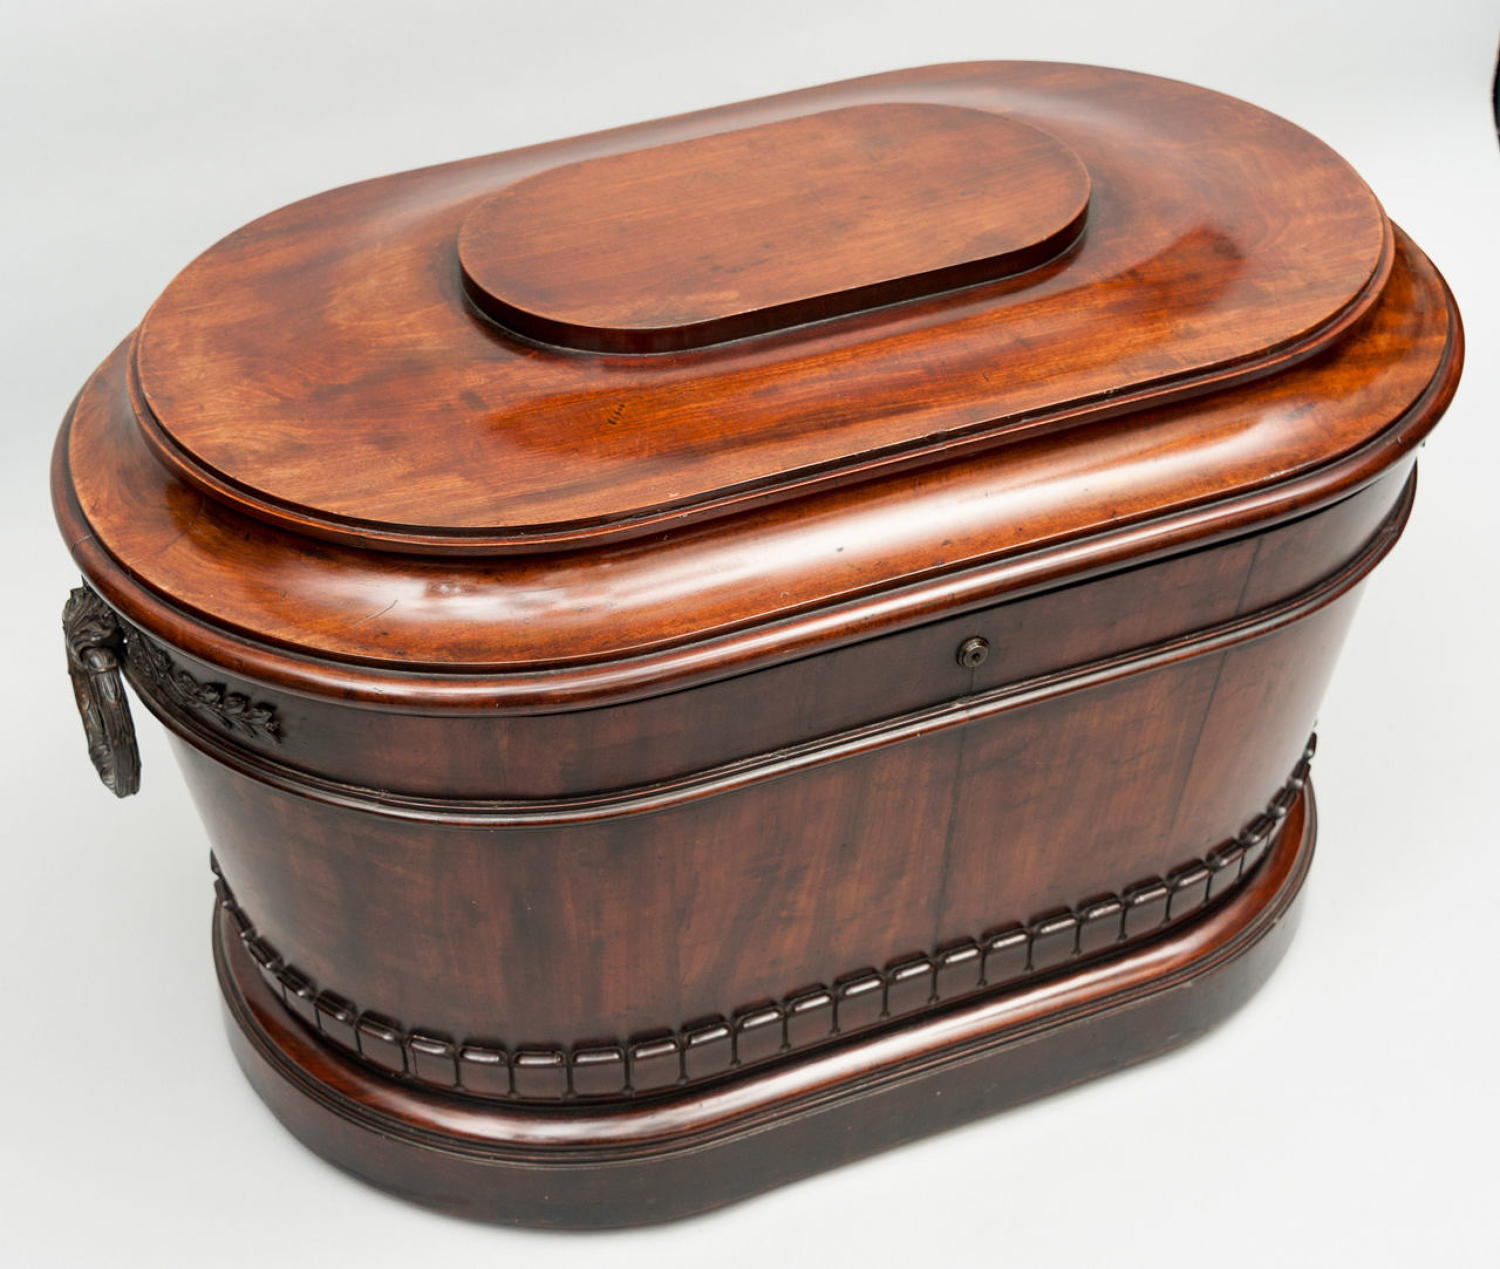 Regency mahogany and bronze mounted oval wine cooler